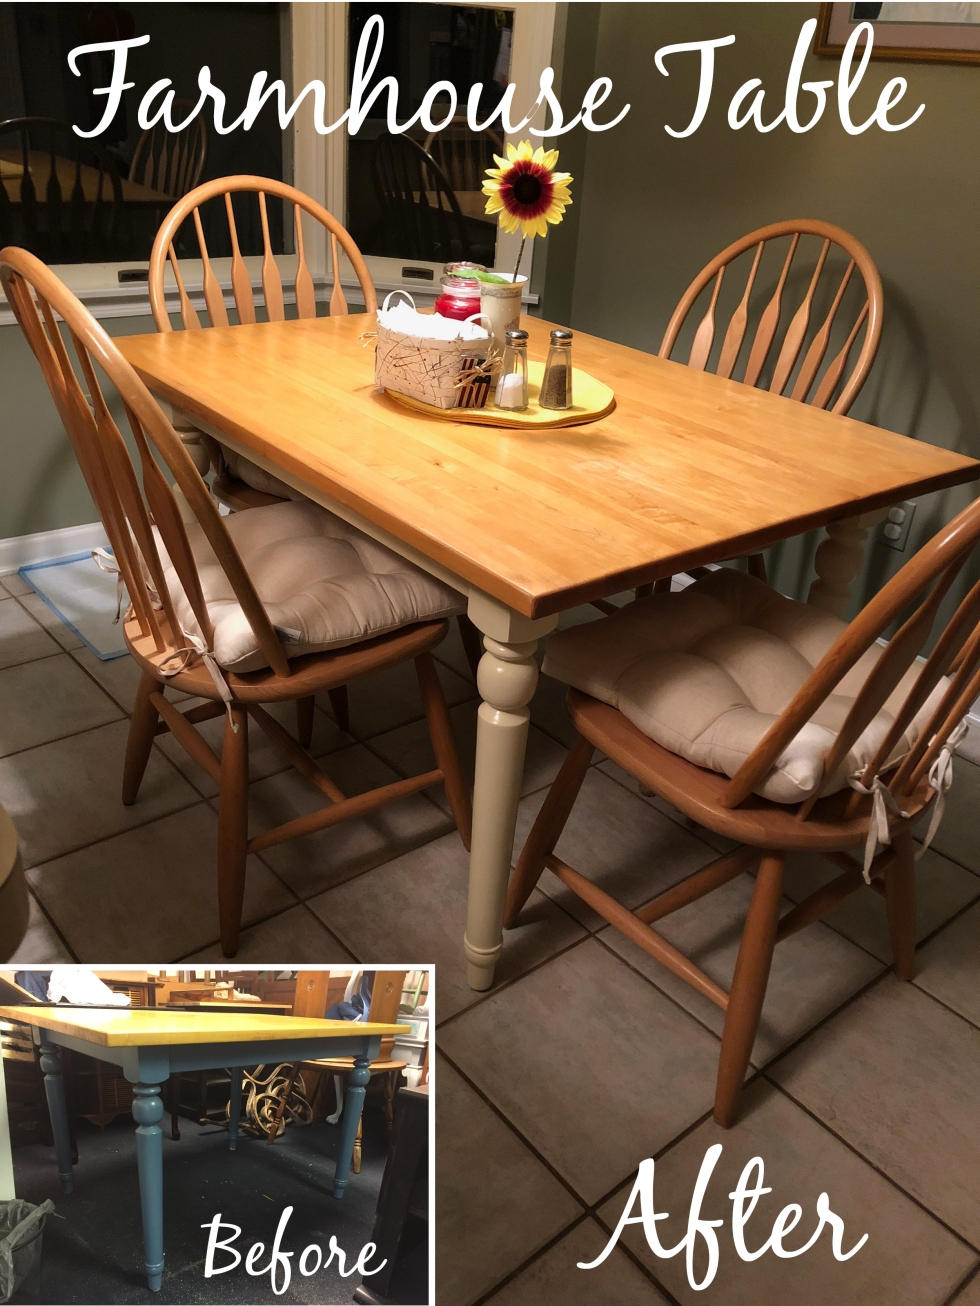 Farmhoue table before and after_Pinterest